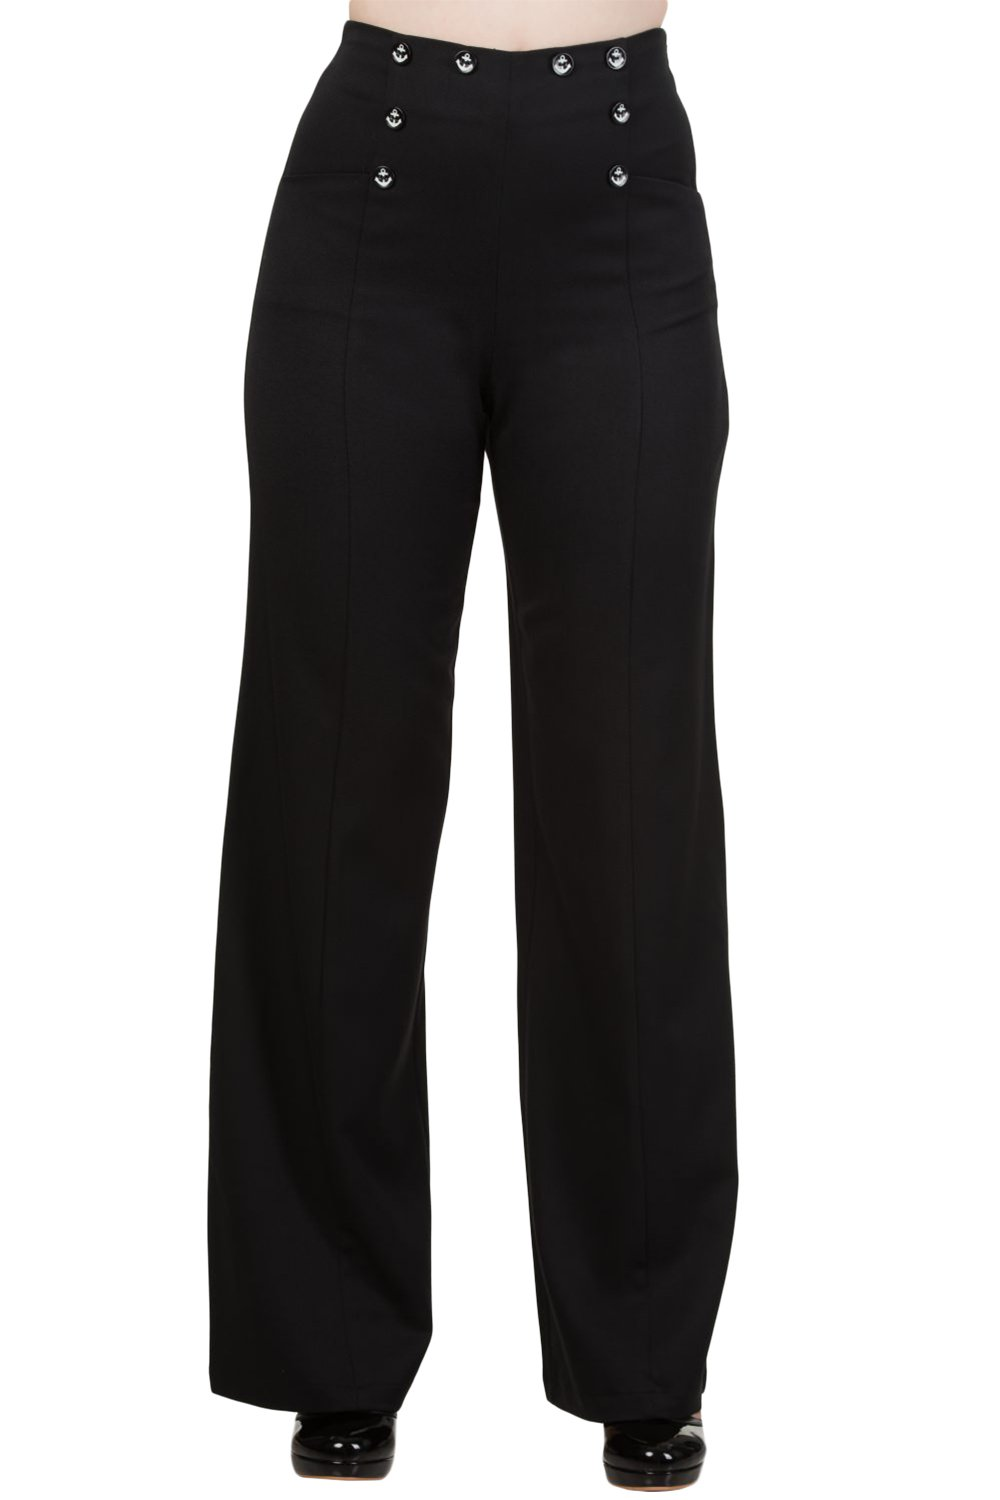 Banned 50's Vintage Sailor High Waist Double Buttoned Wide Leg bell flare Pants (XS, Black )